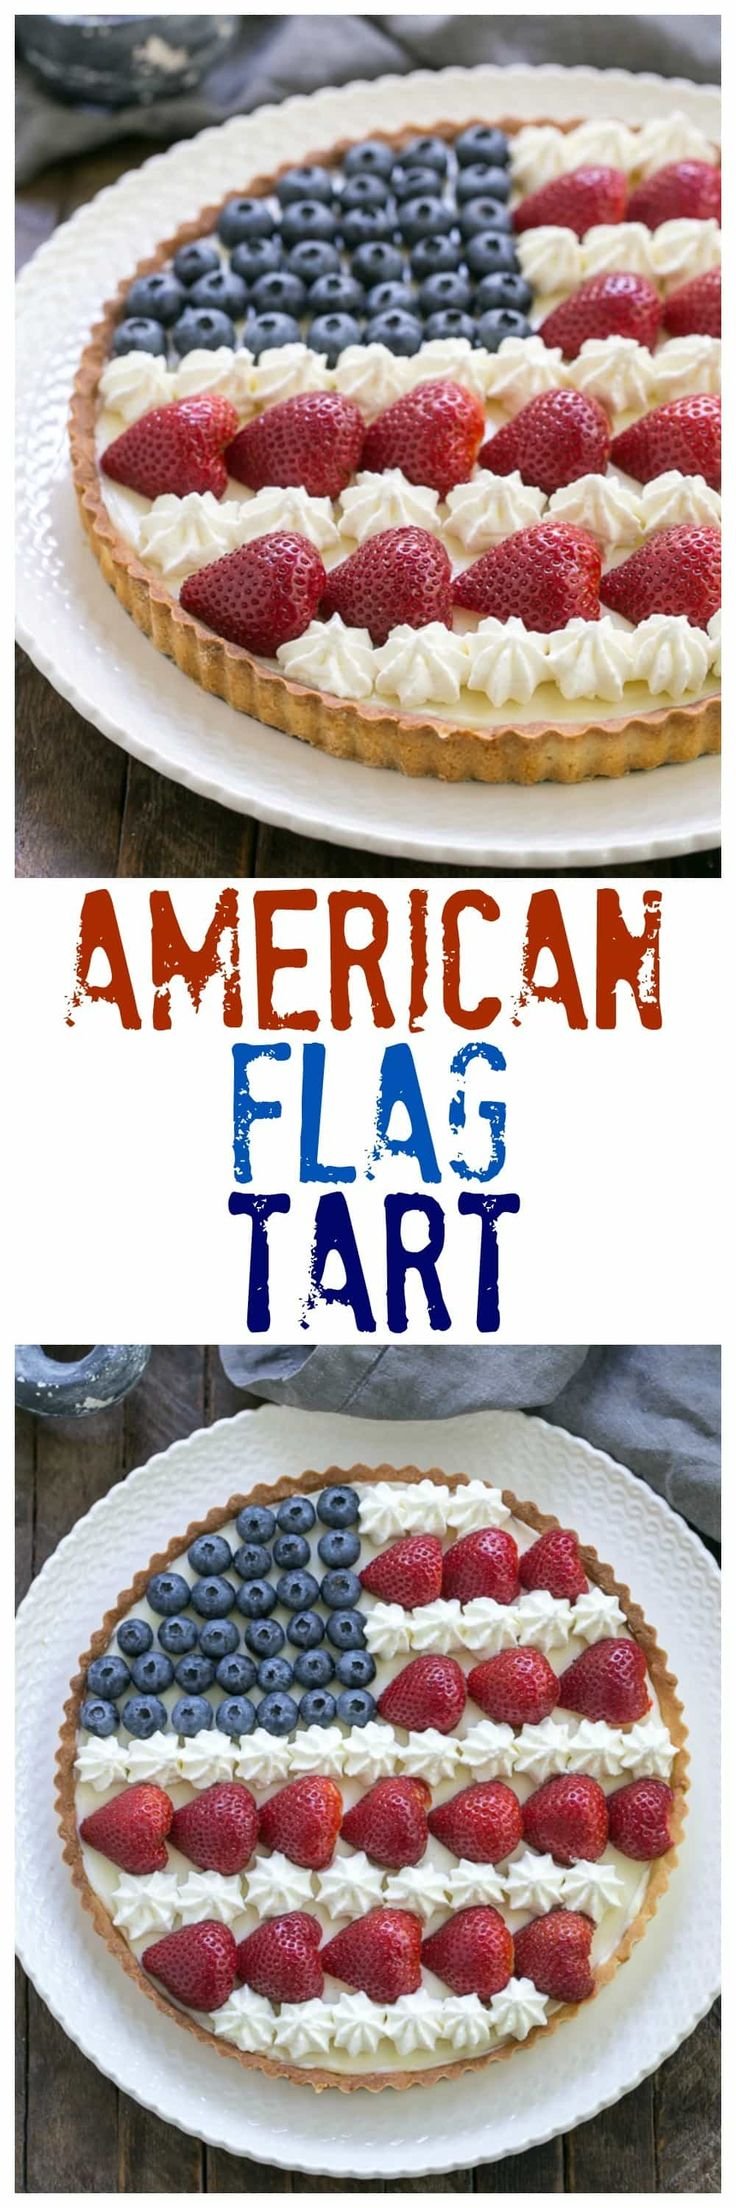 American Flag Fruit Tart | Pate sablee crust, light cream cheese filling and berries and cream stars and stripes! @lizzydo